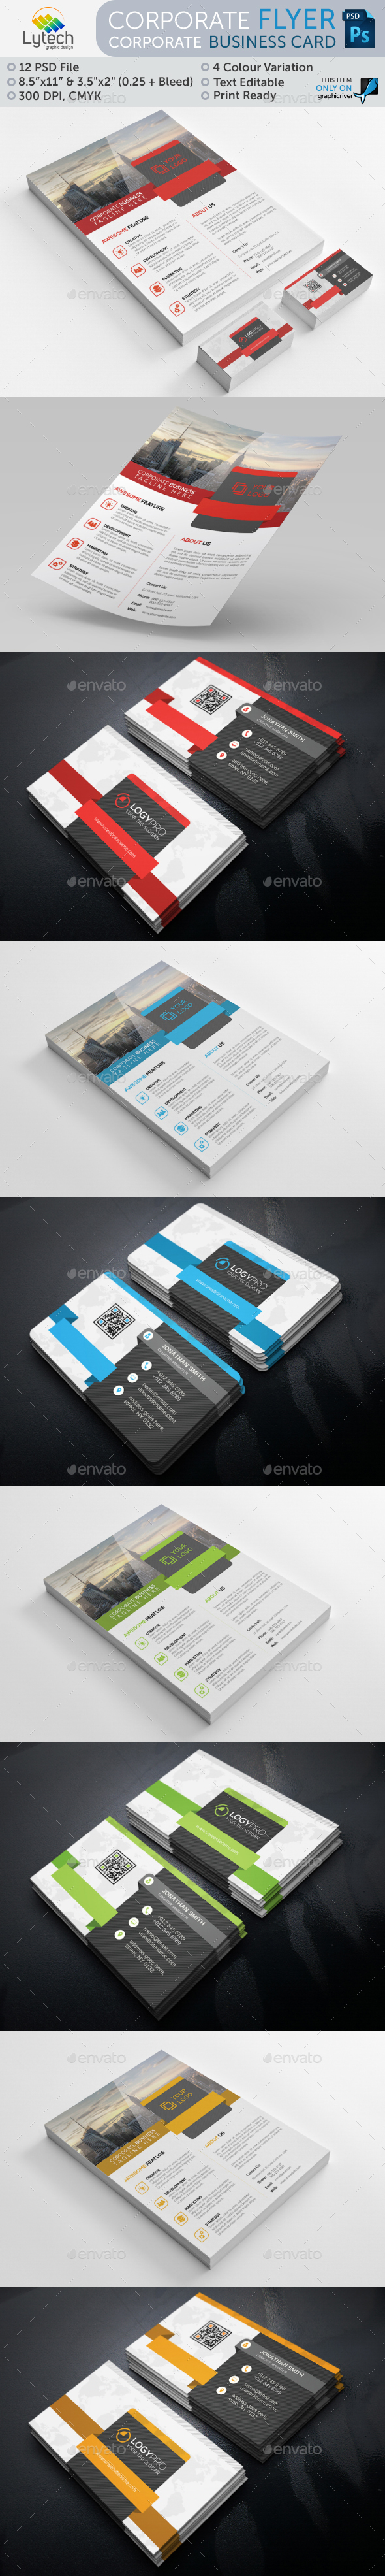 Corporate Flyer + Business Card (Bundle 2 in 1) - Corporate Flyers